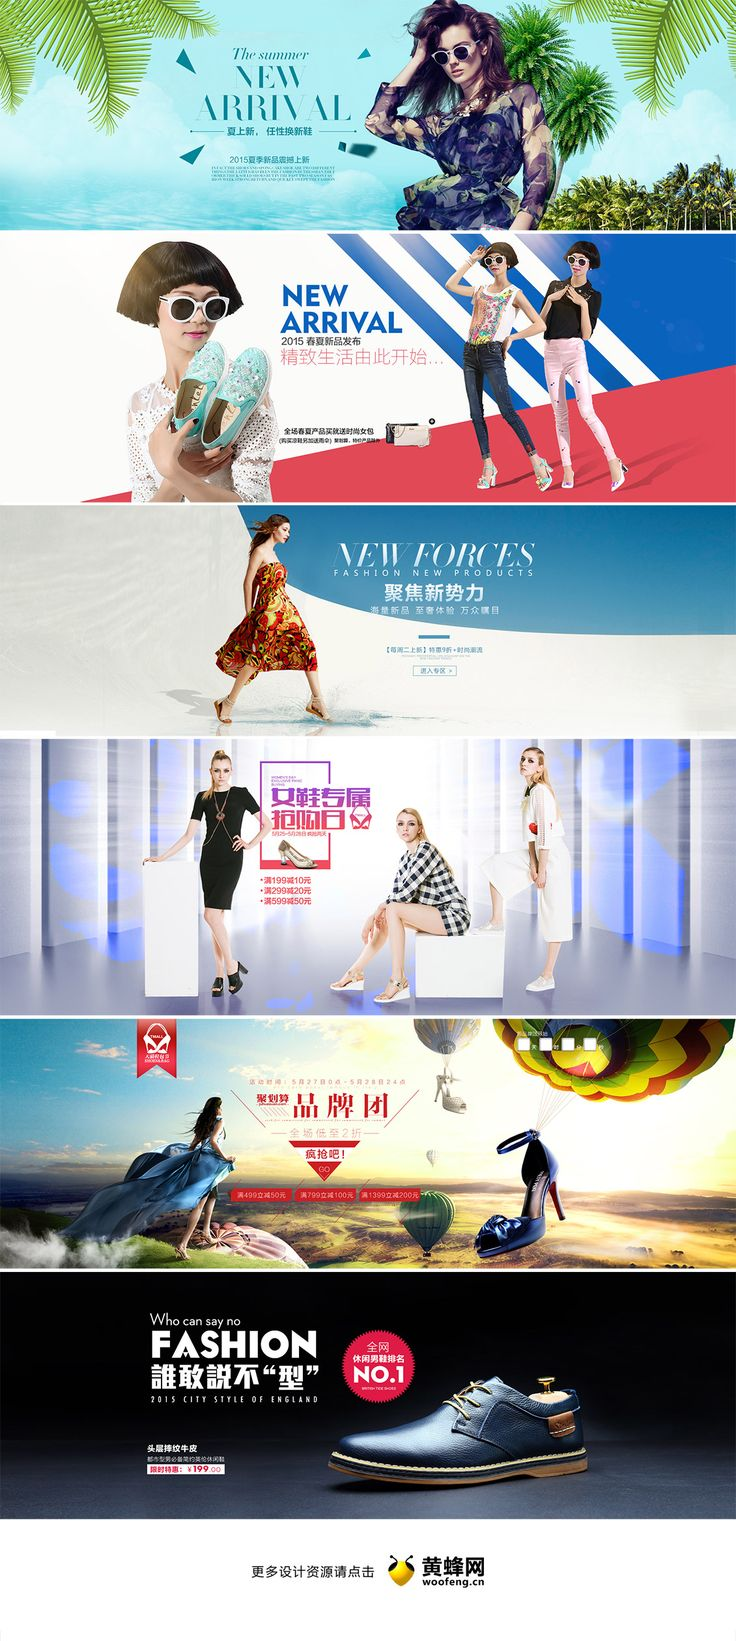 A group of fashion atmosphere clothing shoes category banner design, from the Hornets http://woofeng.cn/